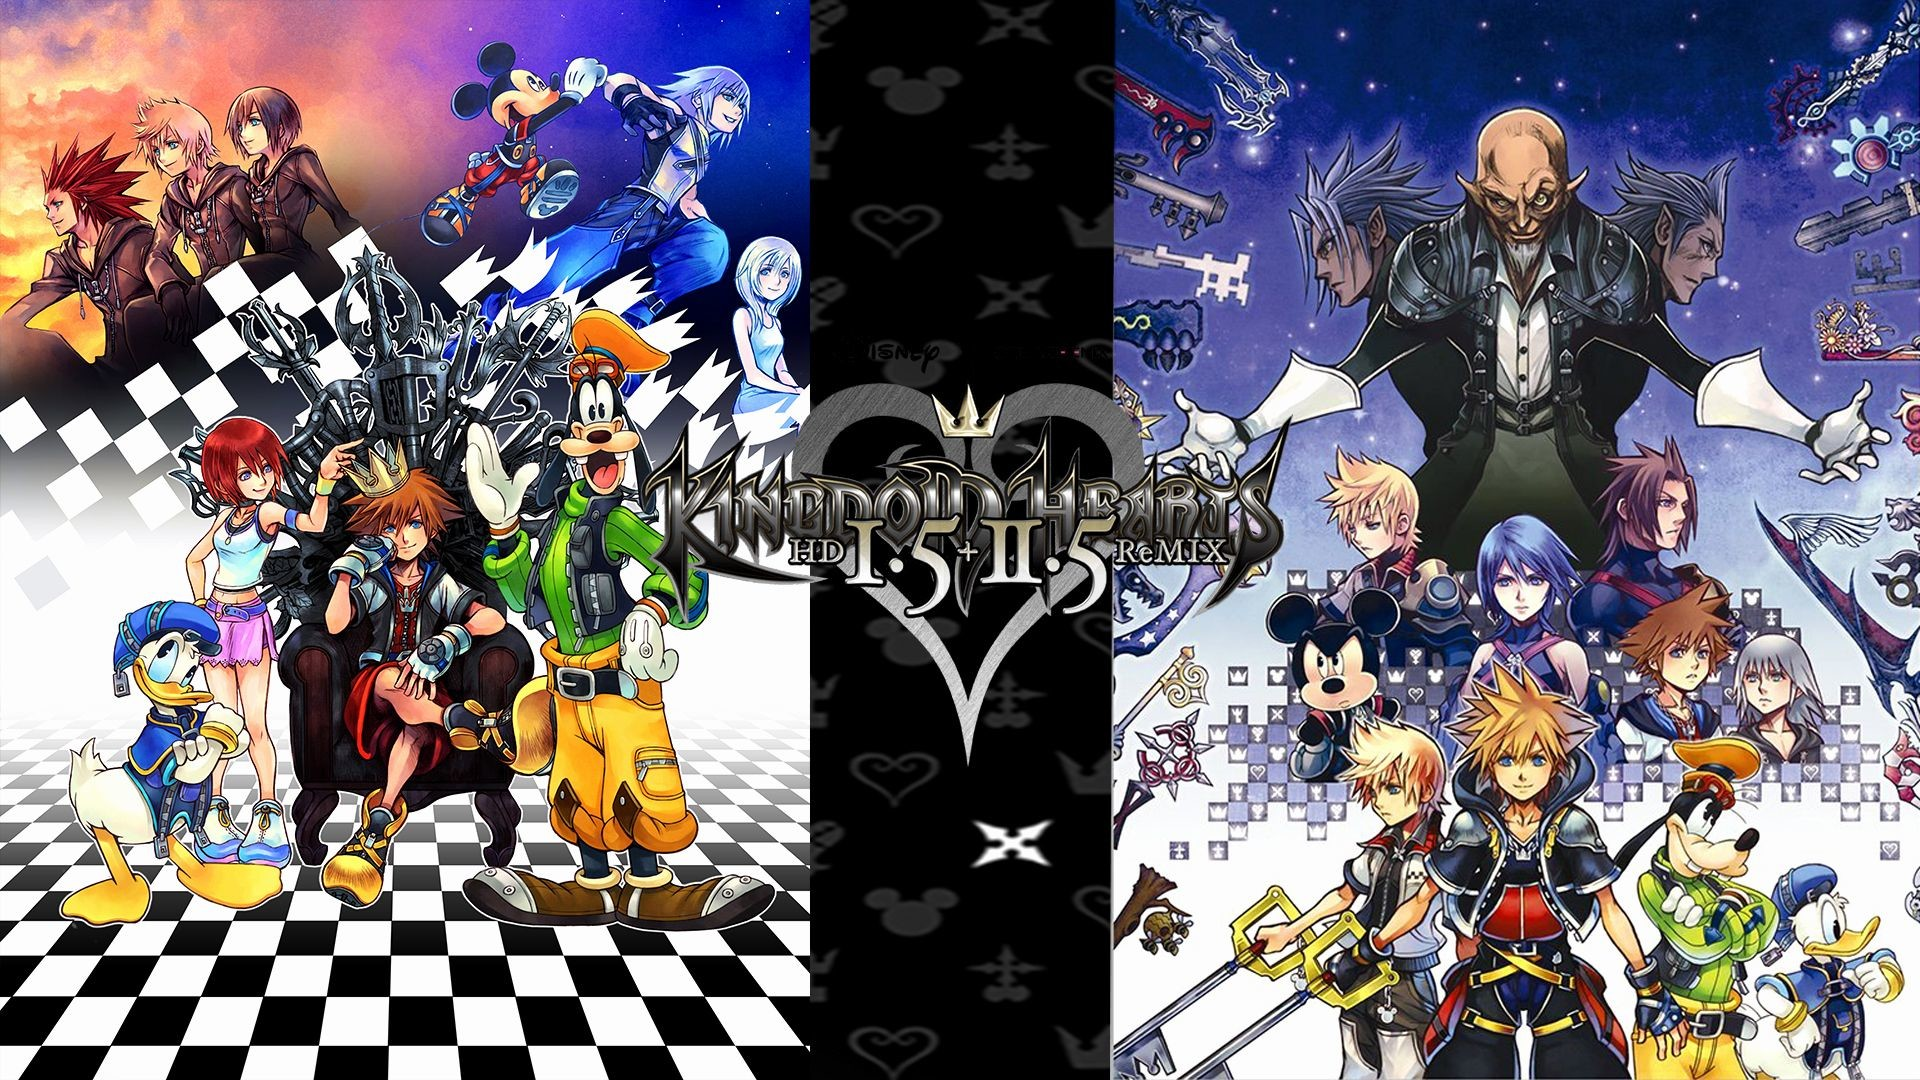 Kh Wallpaper Posted By Samantha Thompson